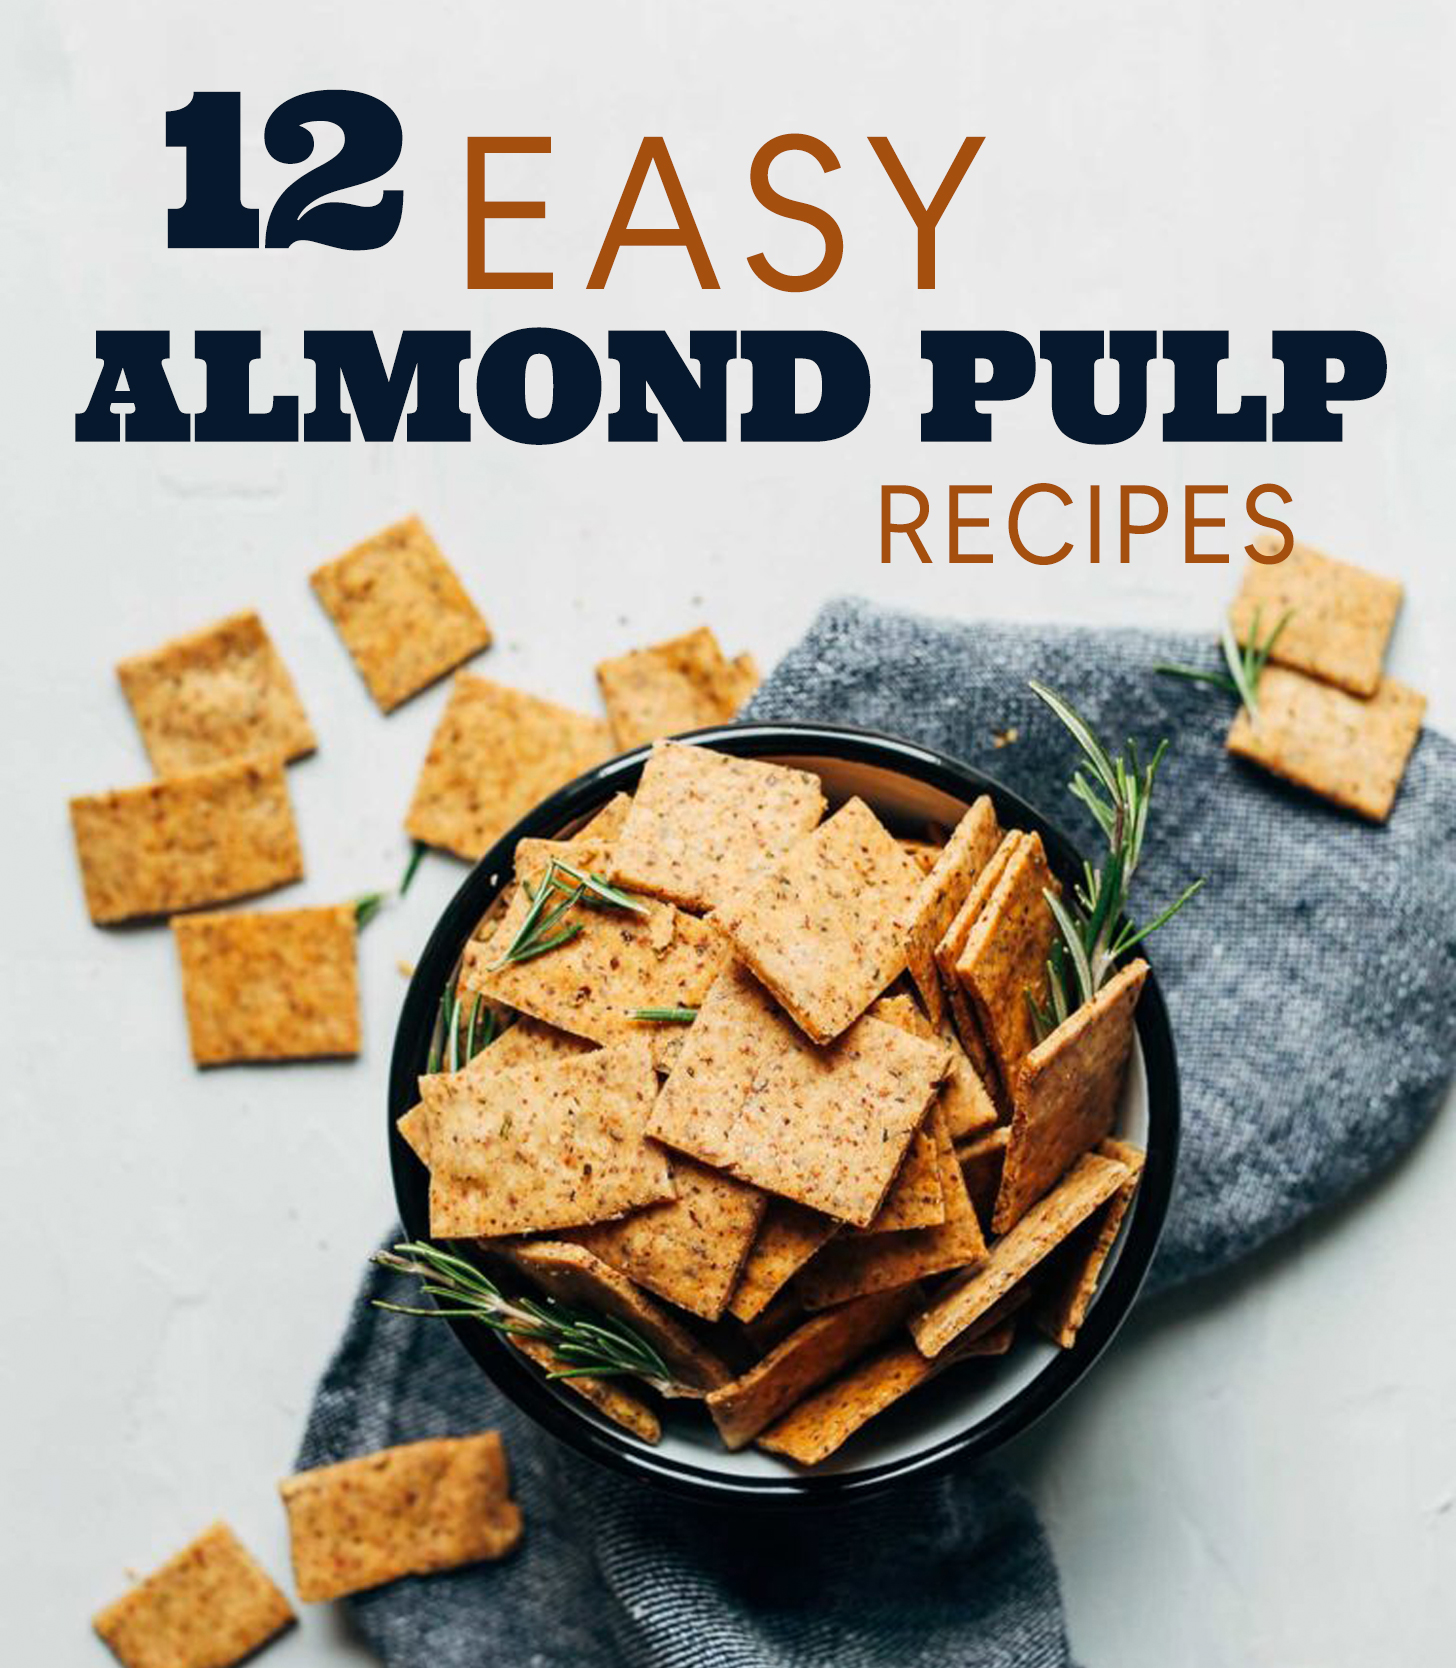 Overflowing bowl of almond pulp crackers with text overlaid saying 12 Easy Almond Pulp Recipes